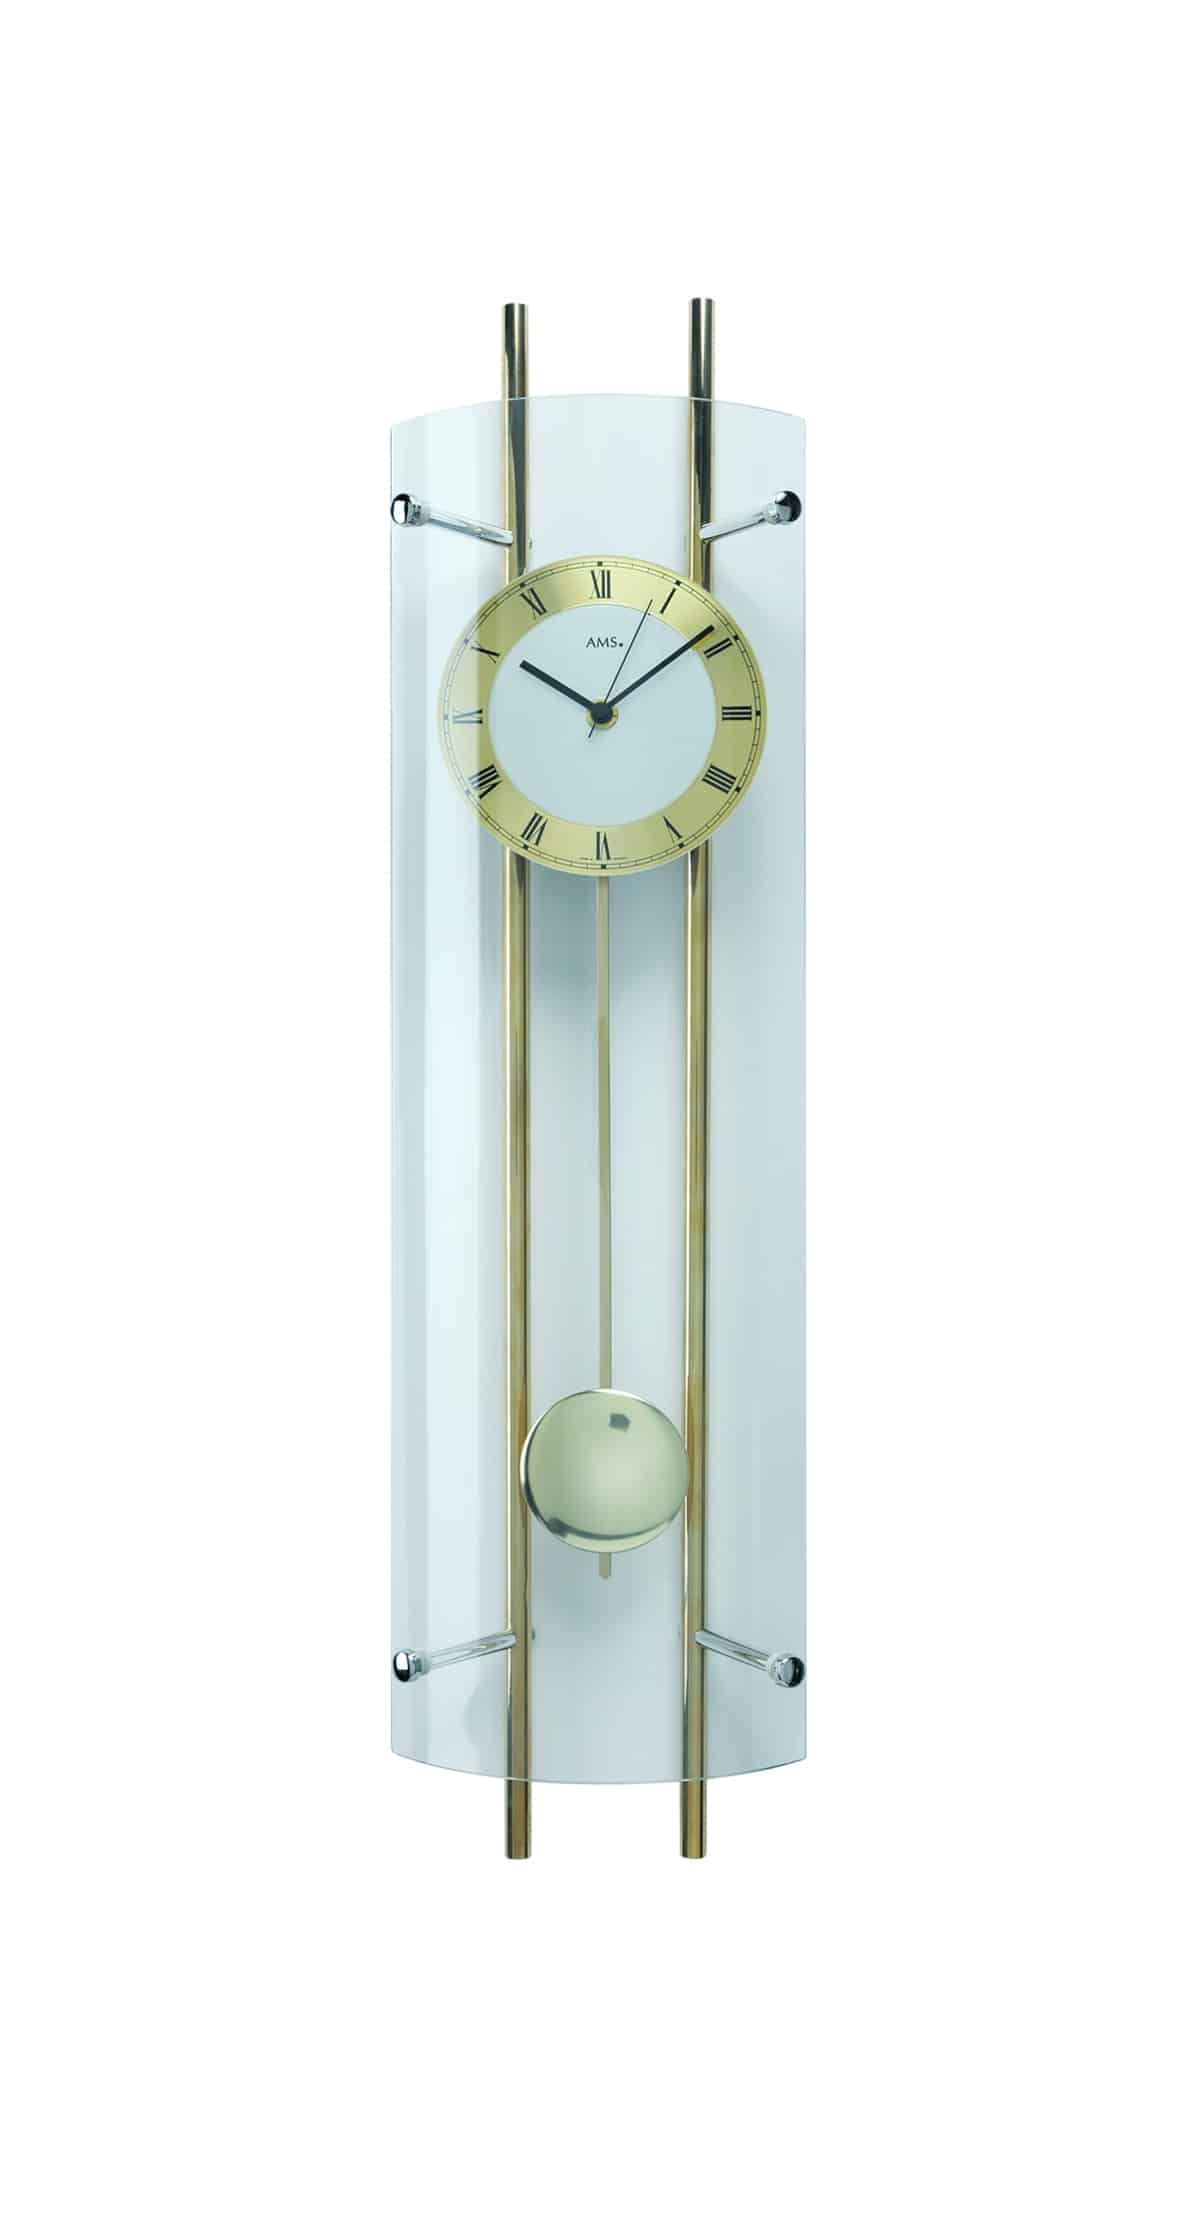 Ams 5227 curved glass wall clock ams clocks for Curved glass wall